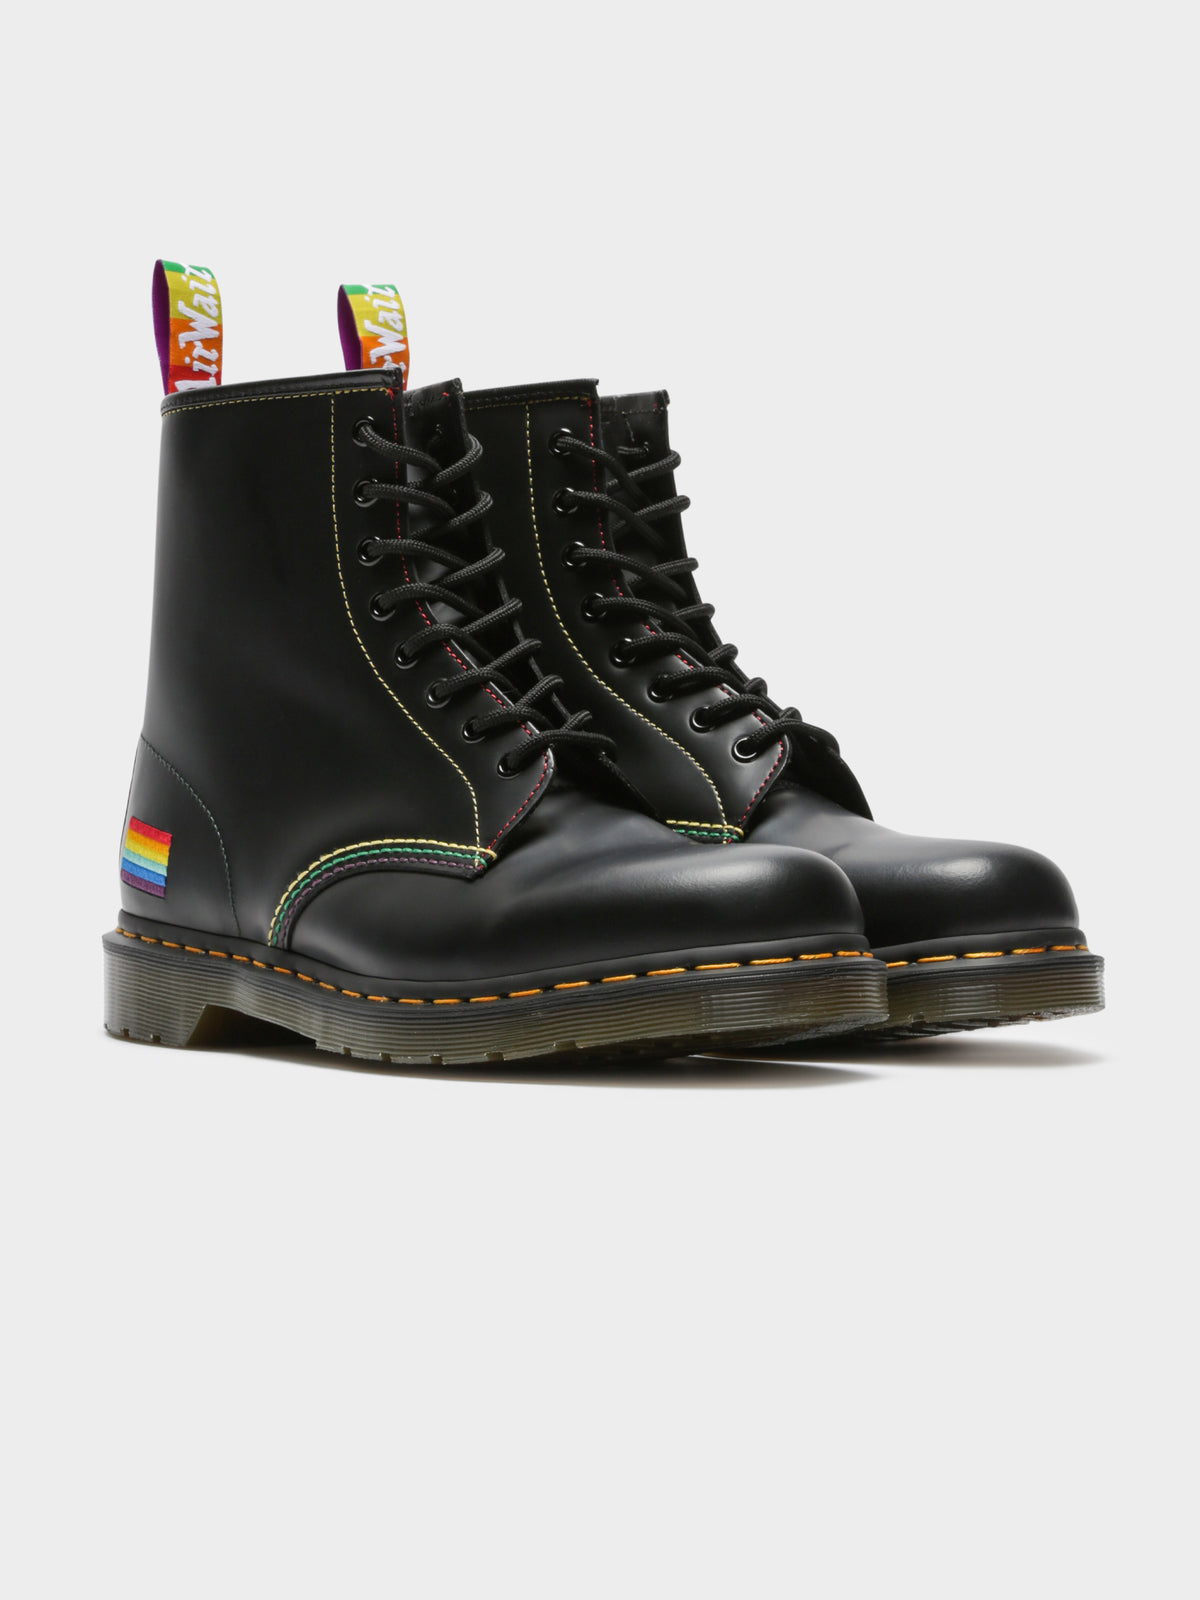 Unisex 2460 Pride Smooth Lace Up Boots in Black